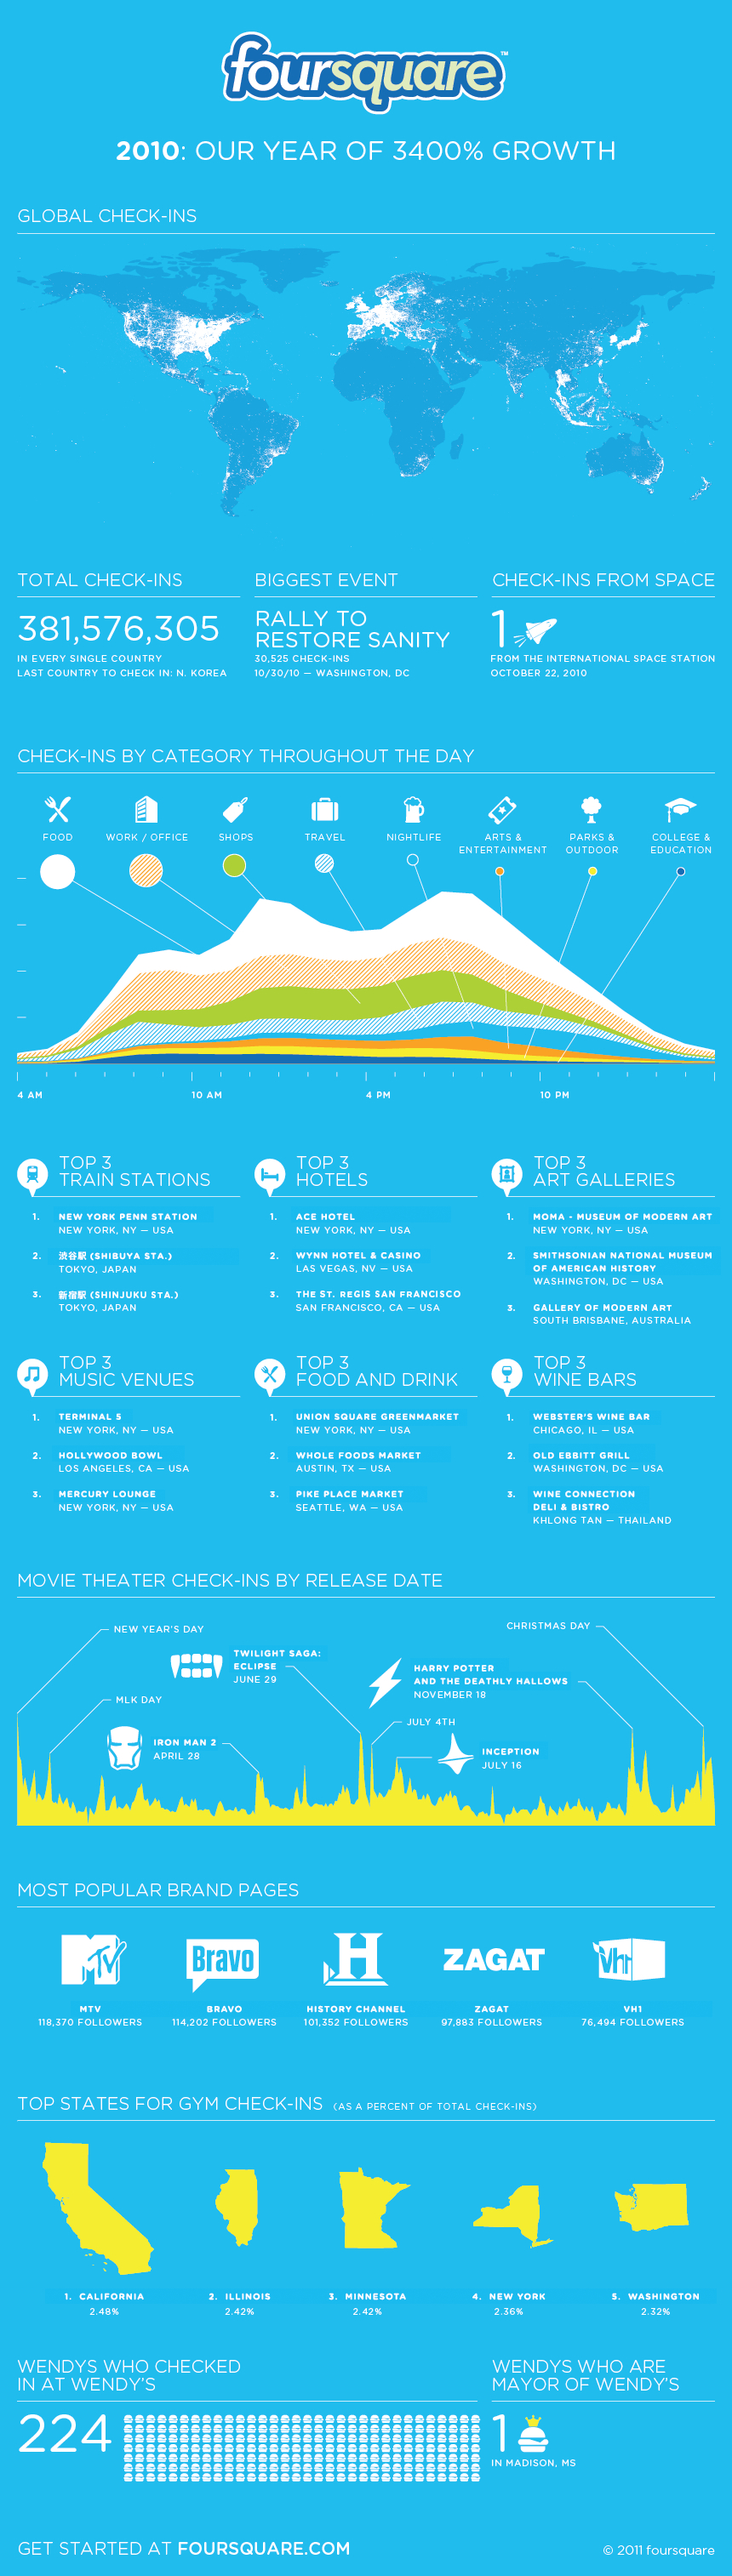 foursquare-2010-stats-growth